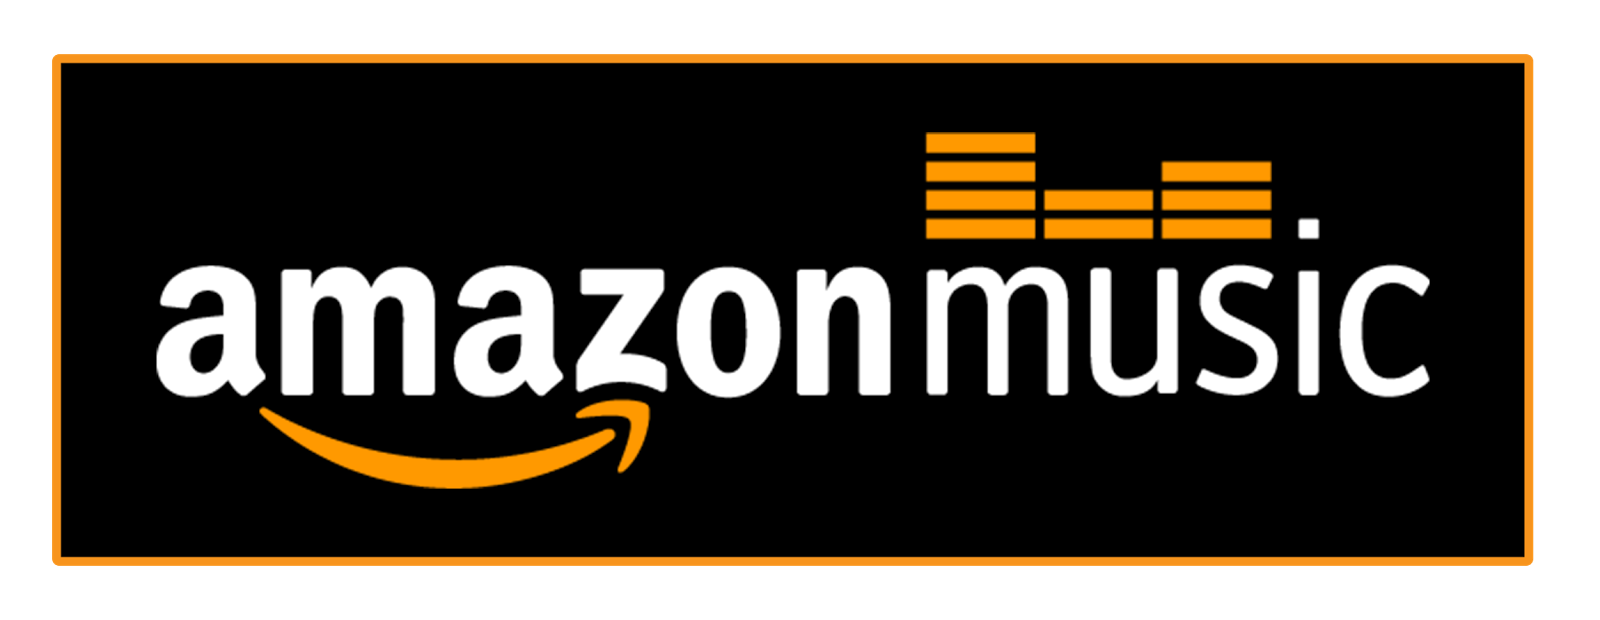 Amazon music logo png. Image result for g